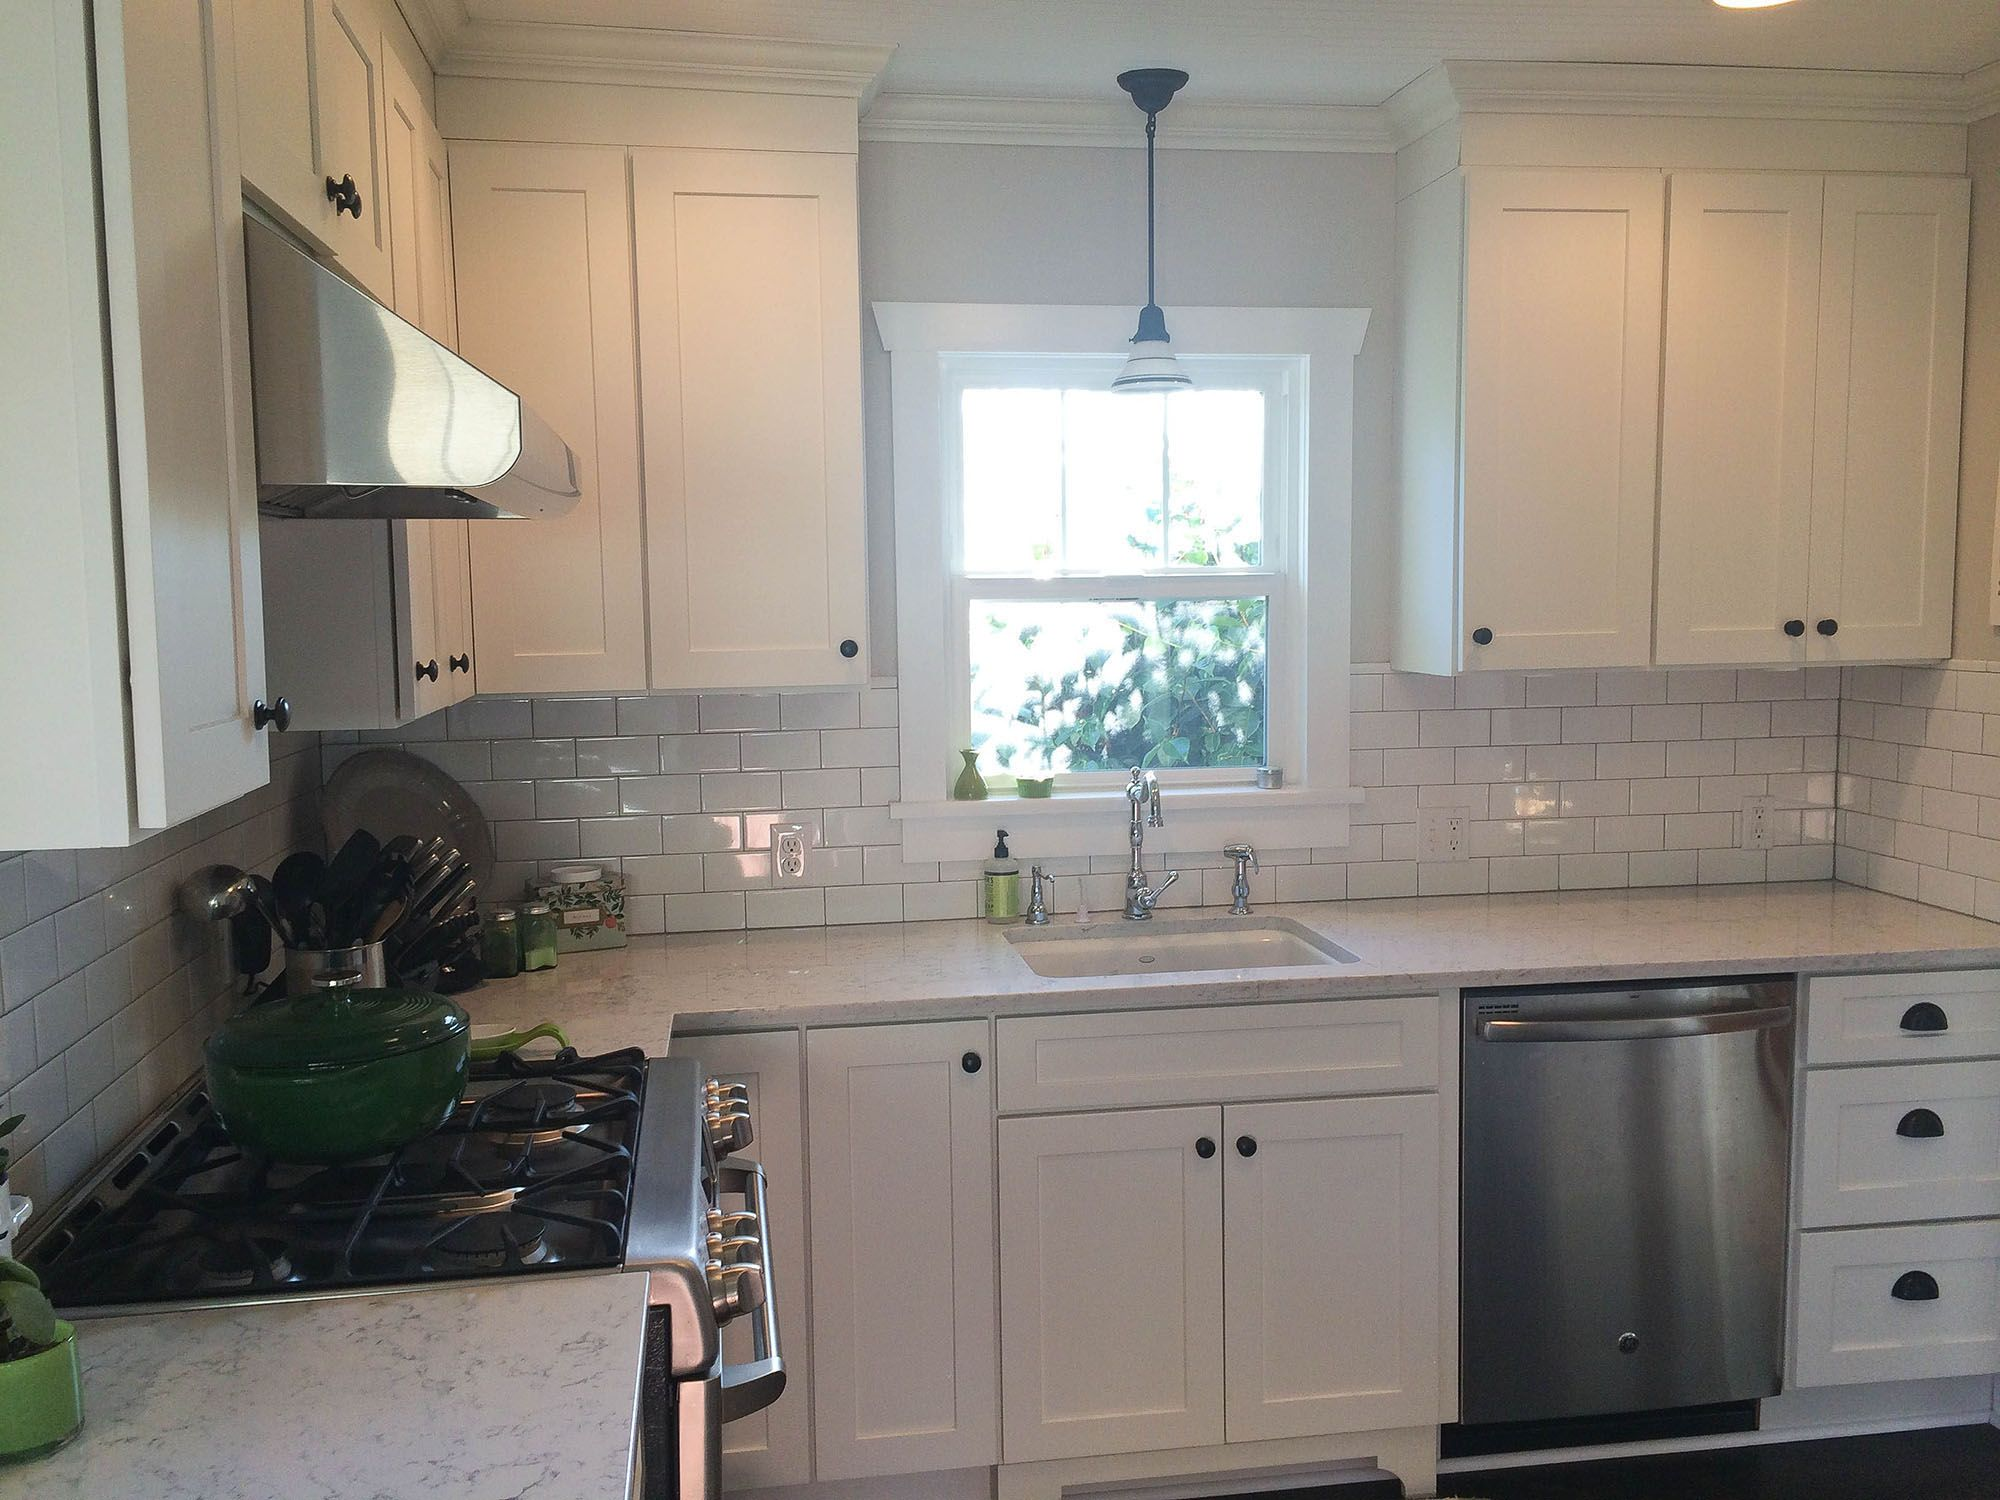 Seattle Remodeled Kitchen Has Beadboard Ceiling White Shaker Cabinets Angle Base Cabinet Traditi White Shaker Cabinets Kitchen Remodel Cheap Interior Design